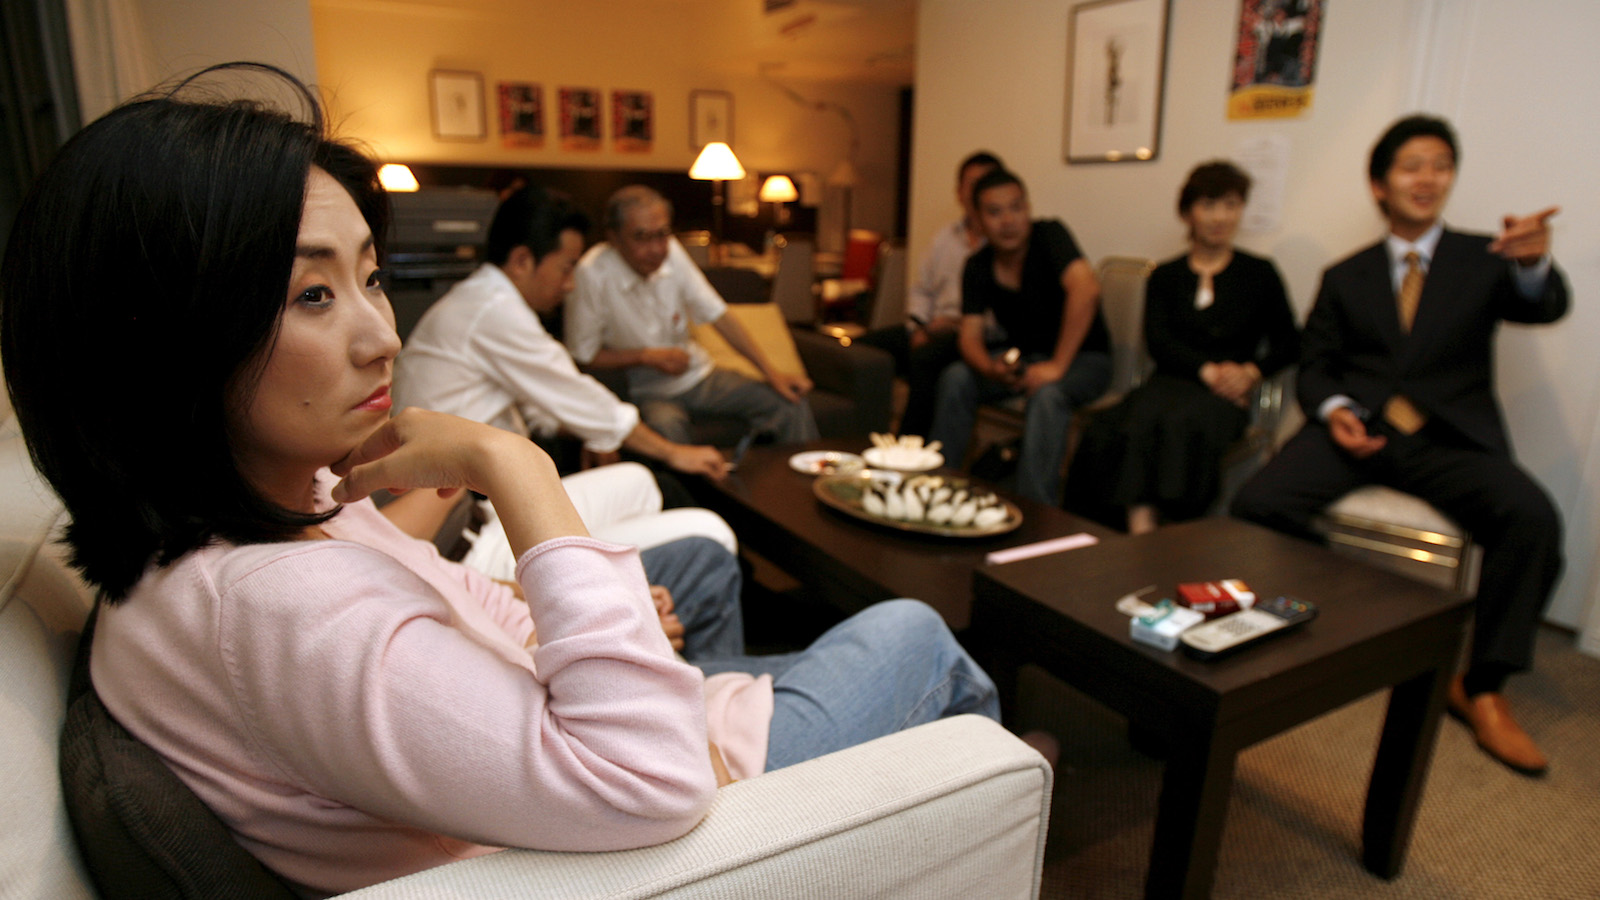 Satomi Kataoka (L), wife of former Peruvian President Alberto Fujimori who is running in the Japanese upper house election for People's New Party, waits for the result as she watches TV with Fujimori's relatives and supporters at a campaign office in Tokyo July 30, 2007. Fujimori was heading for defeat in his bid to win a seat in Japan's parliament from Chile, Japanese media said on Monday.      REUTERS/Kiyoshi Ota (JAPAN) - RTR1SD9H